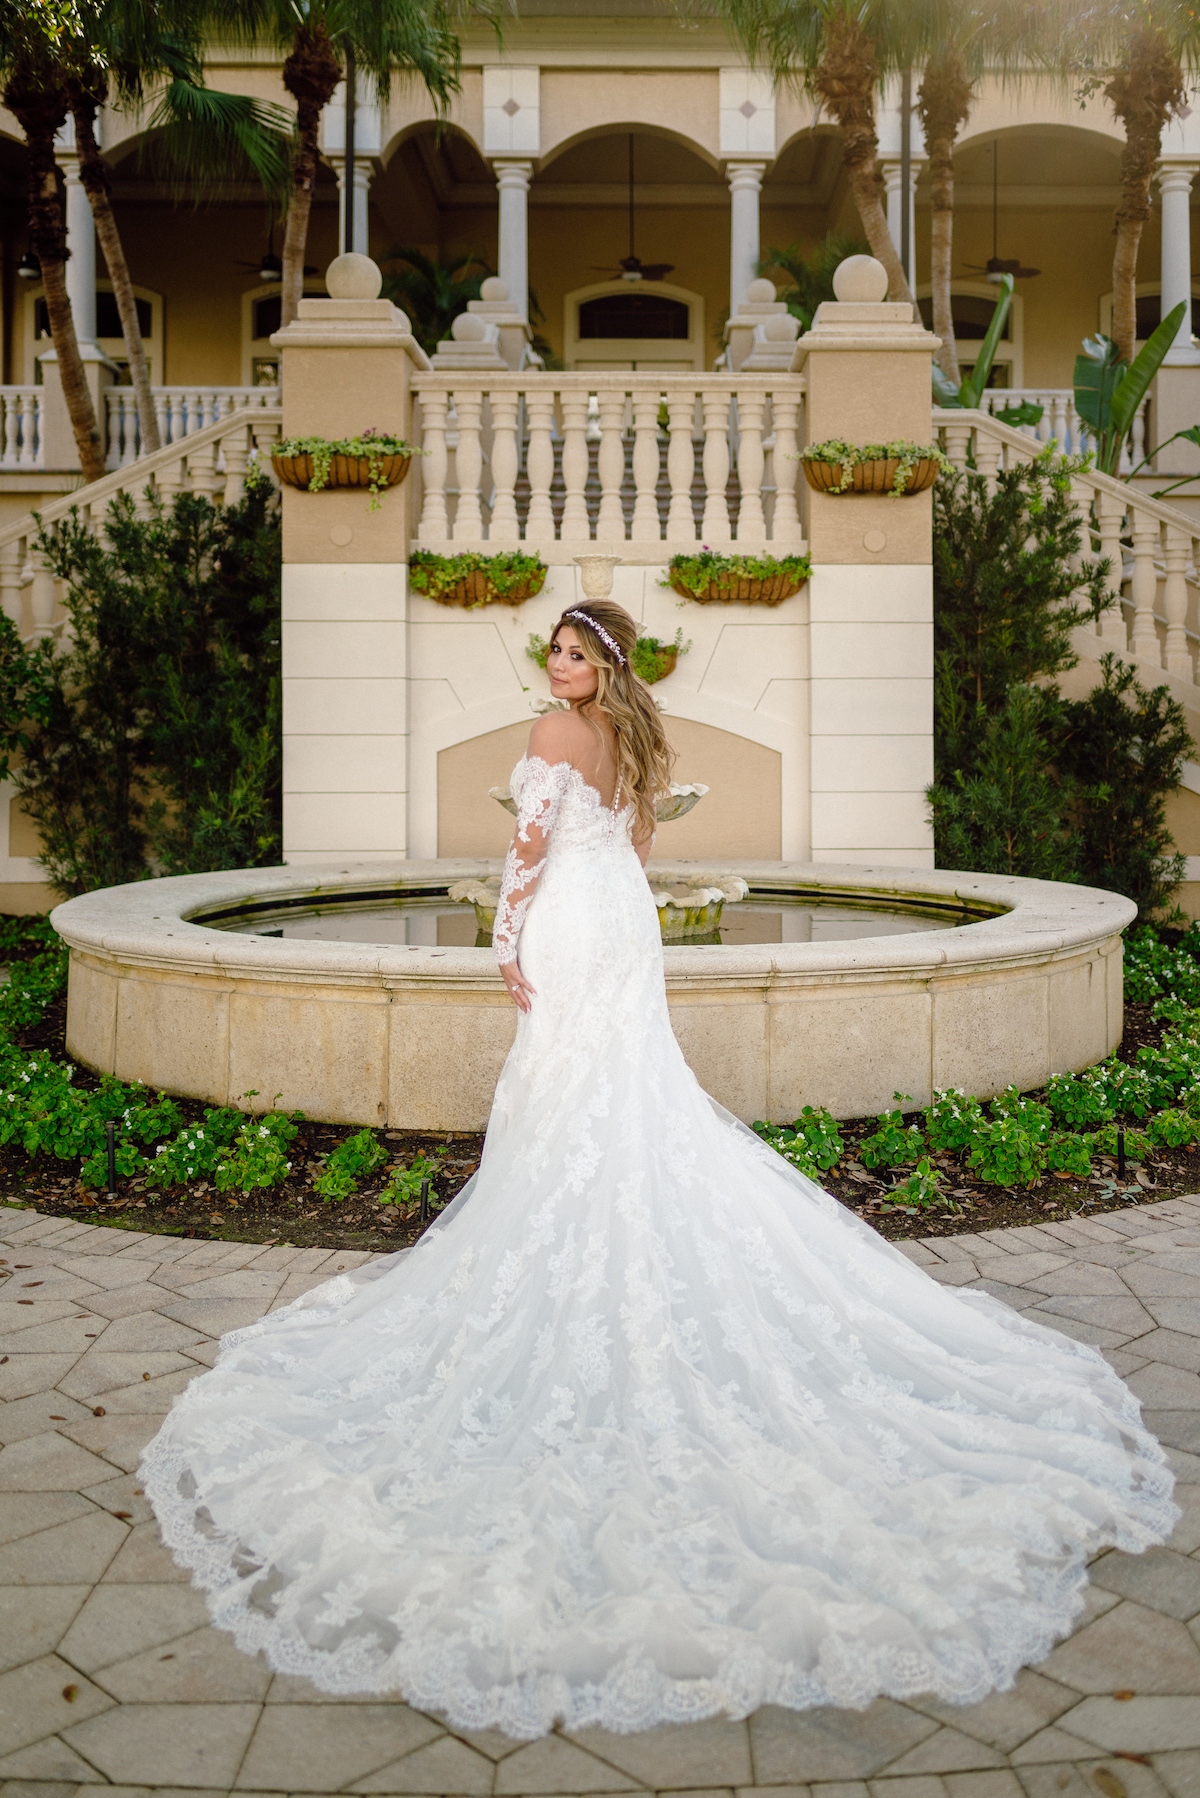 Matt Steeves Photography Bridal Portrait The Club at the Strand Naples FL Weddings Fort Myers.jpg